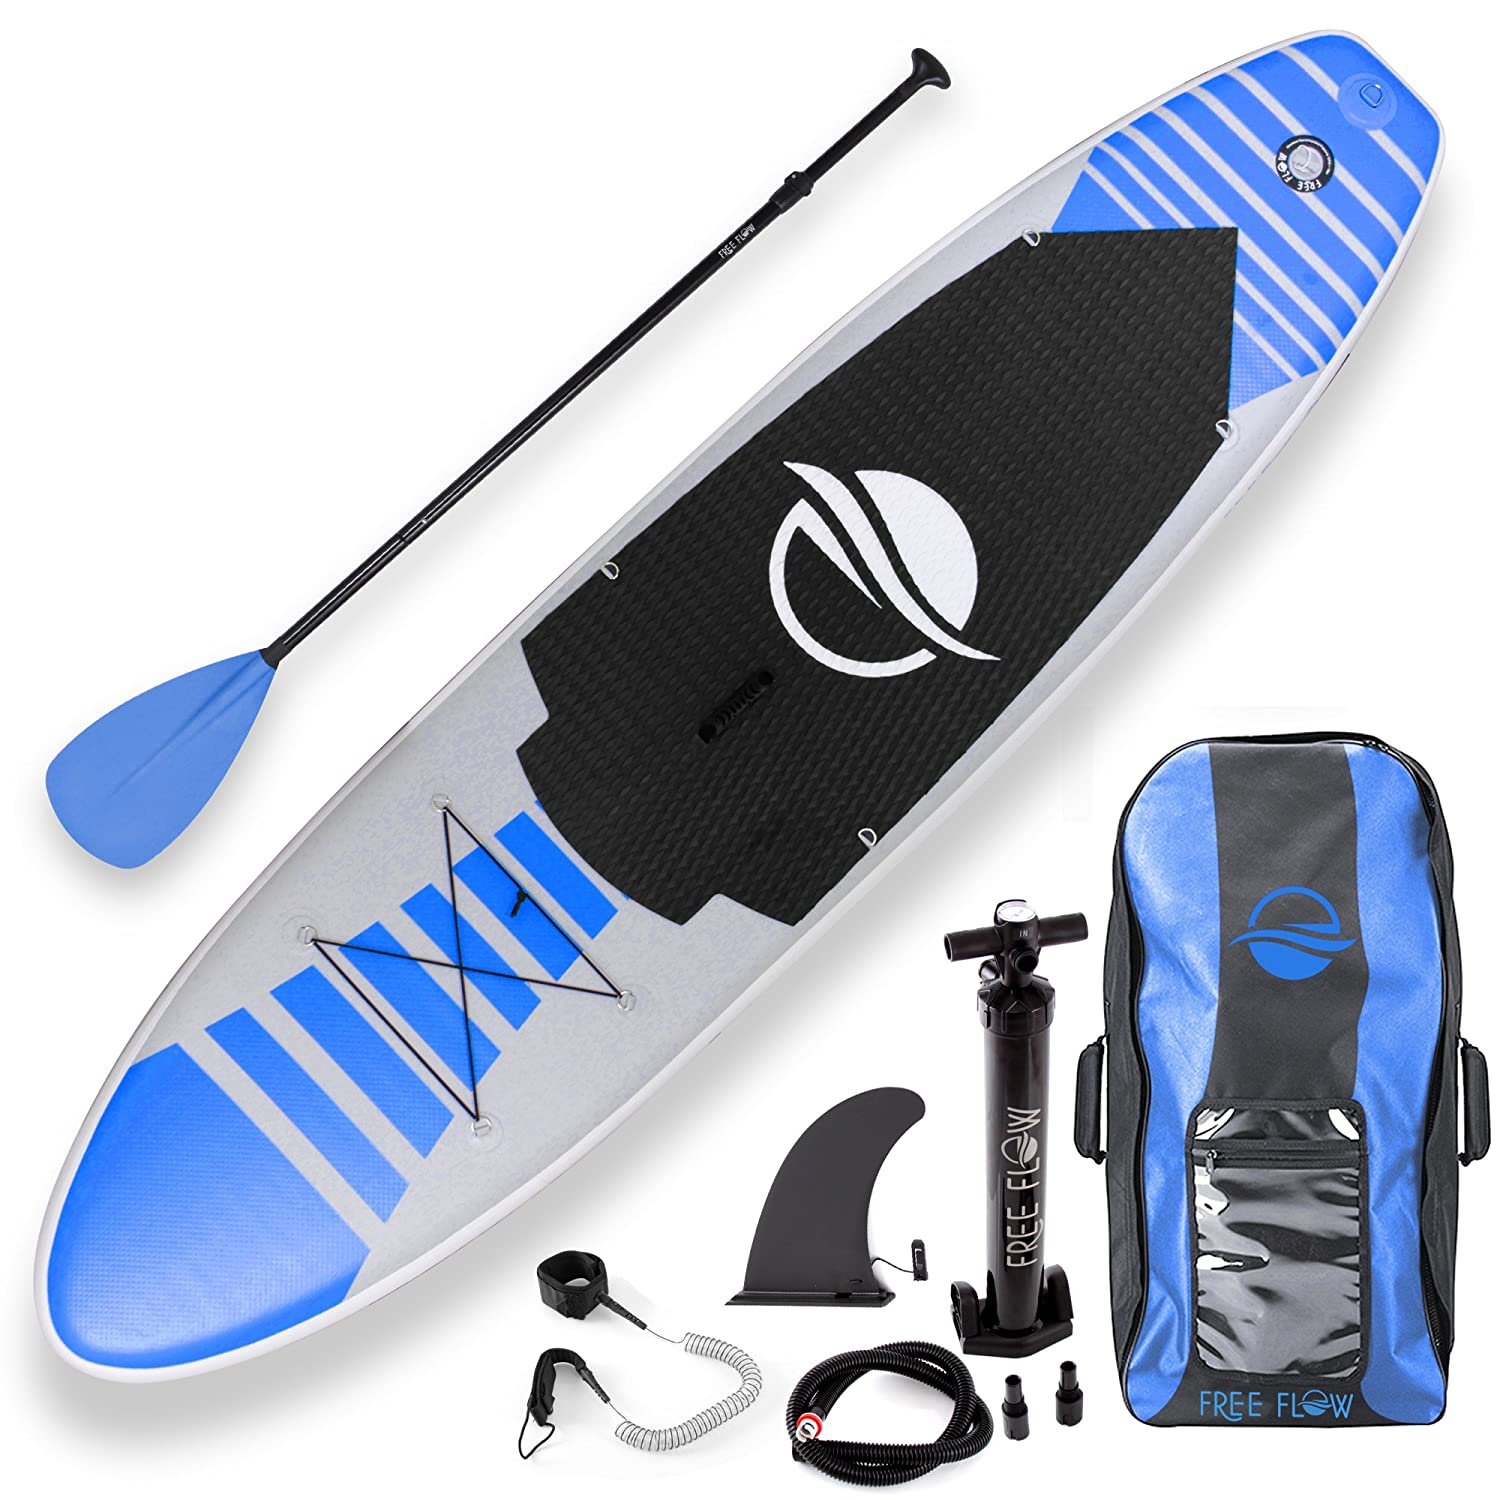 SereneLife Premium Inflatable Stand Up Paddle Board 6 Inches Thick with SUP Accessories Carry Bag | Wide Stance Bottom Fin for Paddling Surf Control Non Slip Deck | Youth Adult Standing Boat